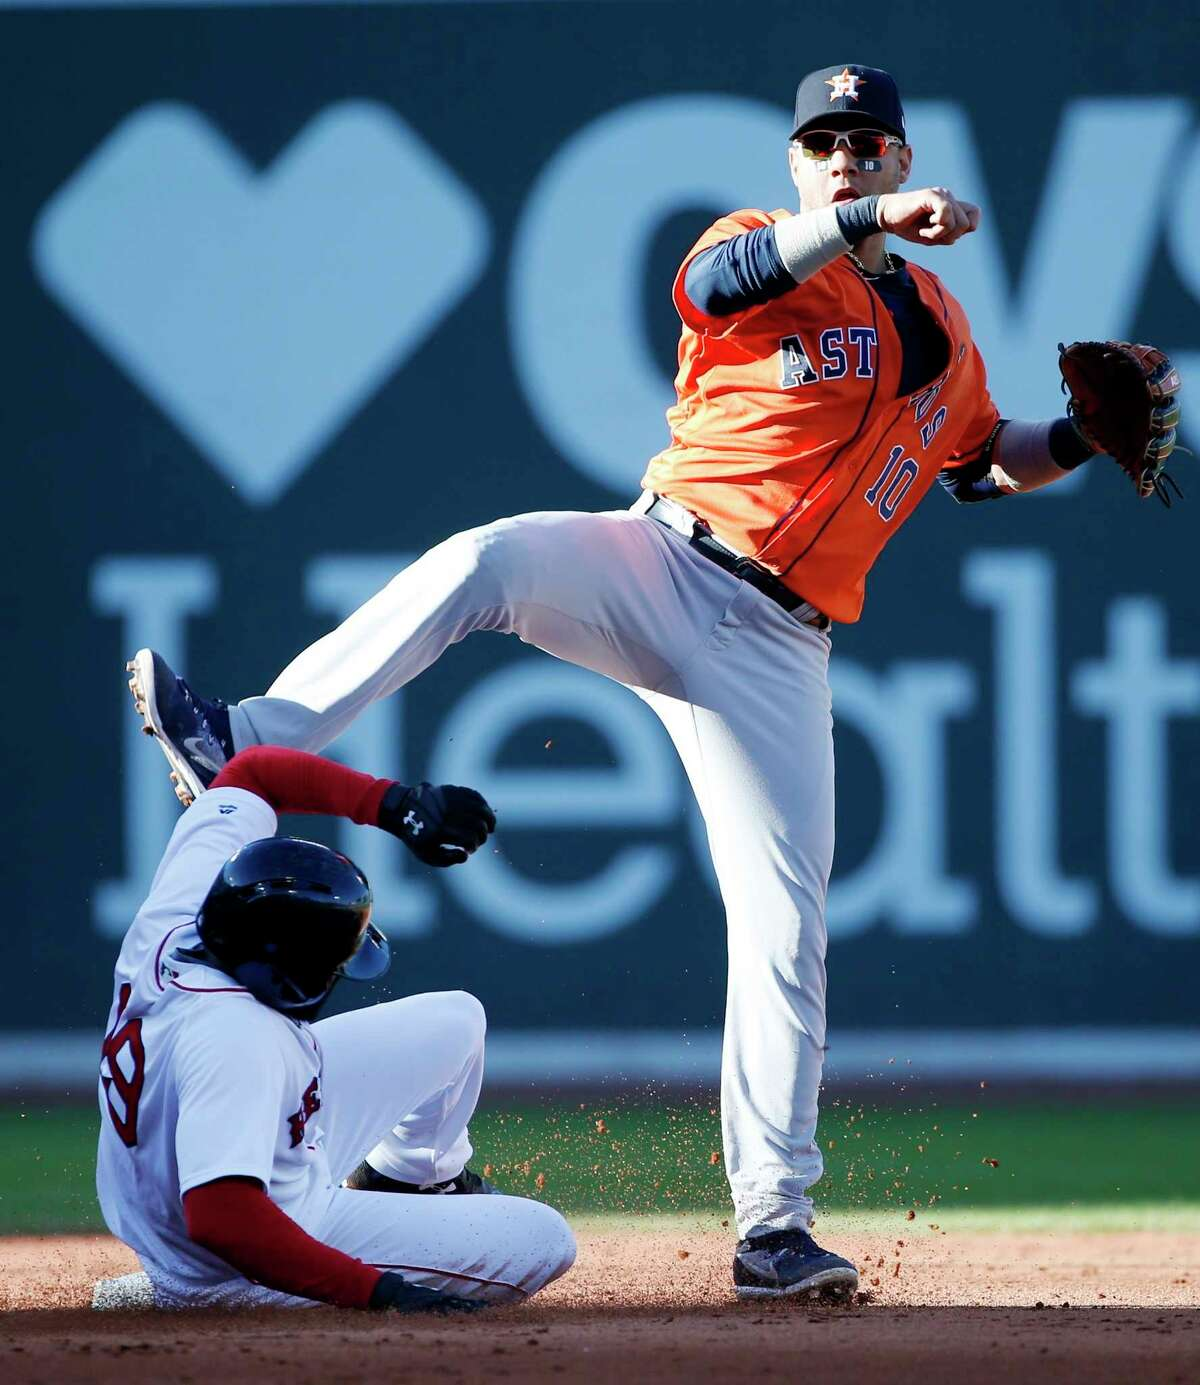 Boston Red Sox's Jackie Bradley Jr. (19) is forced out at second base as Houston Astros' Yuli Gurriel (10) turns the double play on Sam Travis during the fourth inning of a baseball game in Boston, Sunday, Oct. 1, 2017. (AP Photo/Michael Dwyer) ORG XMIT: MAMD106